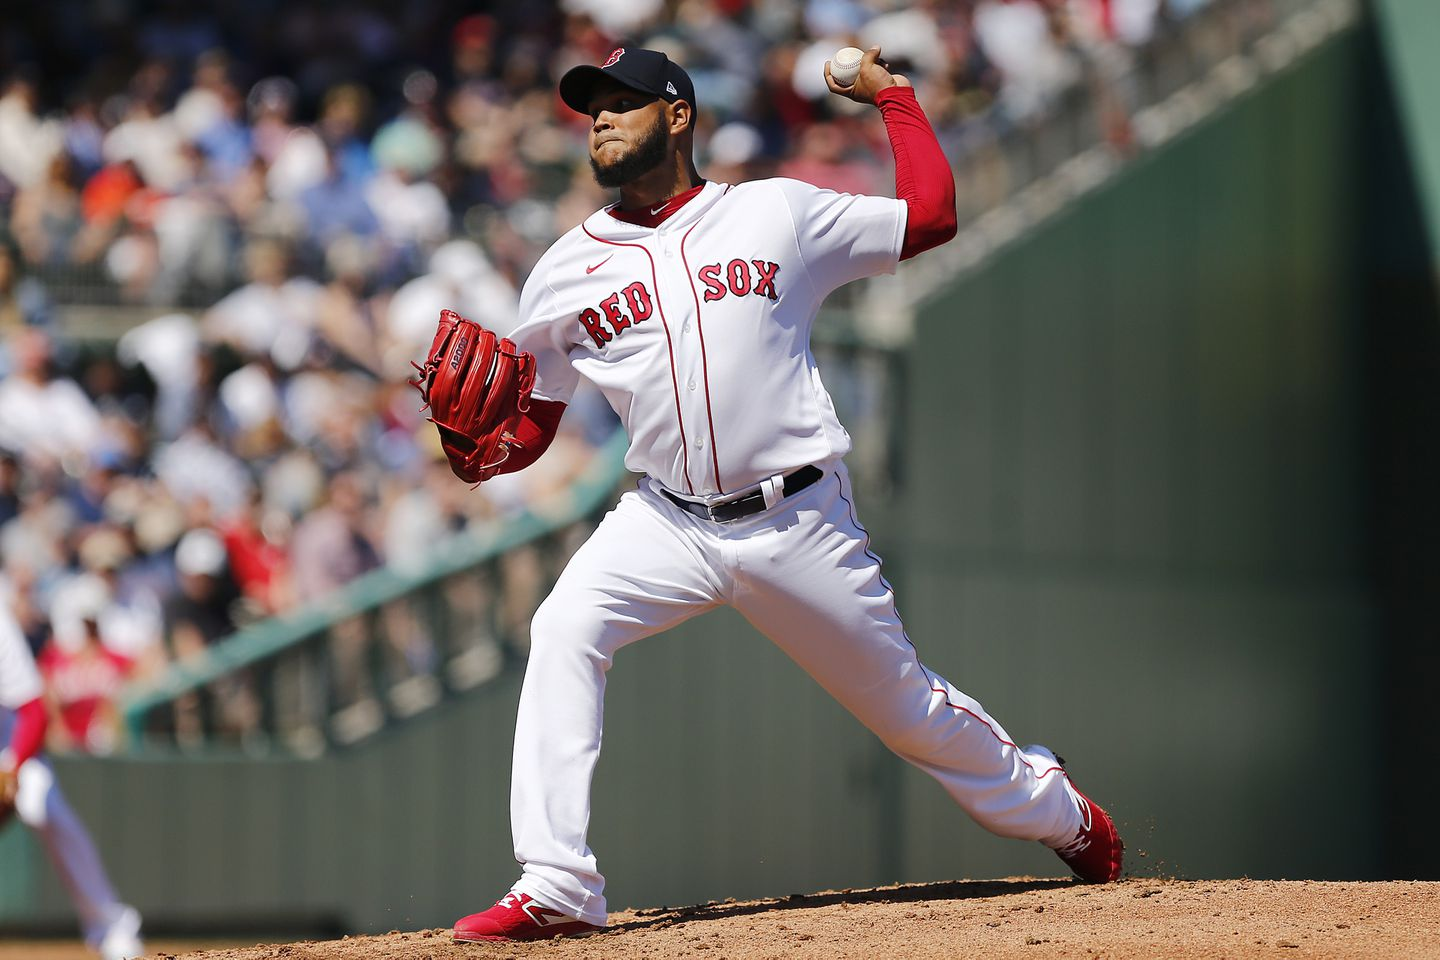 Red Sox pitcher Eduardo Rodriguez has myocarditis, but says he won't opt  out of season - The Boston Globe